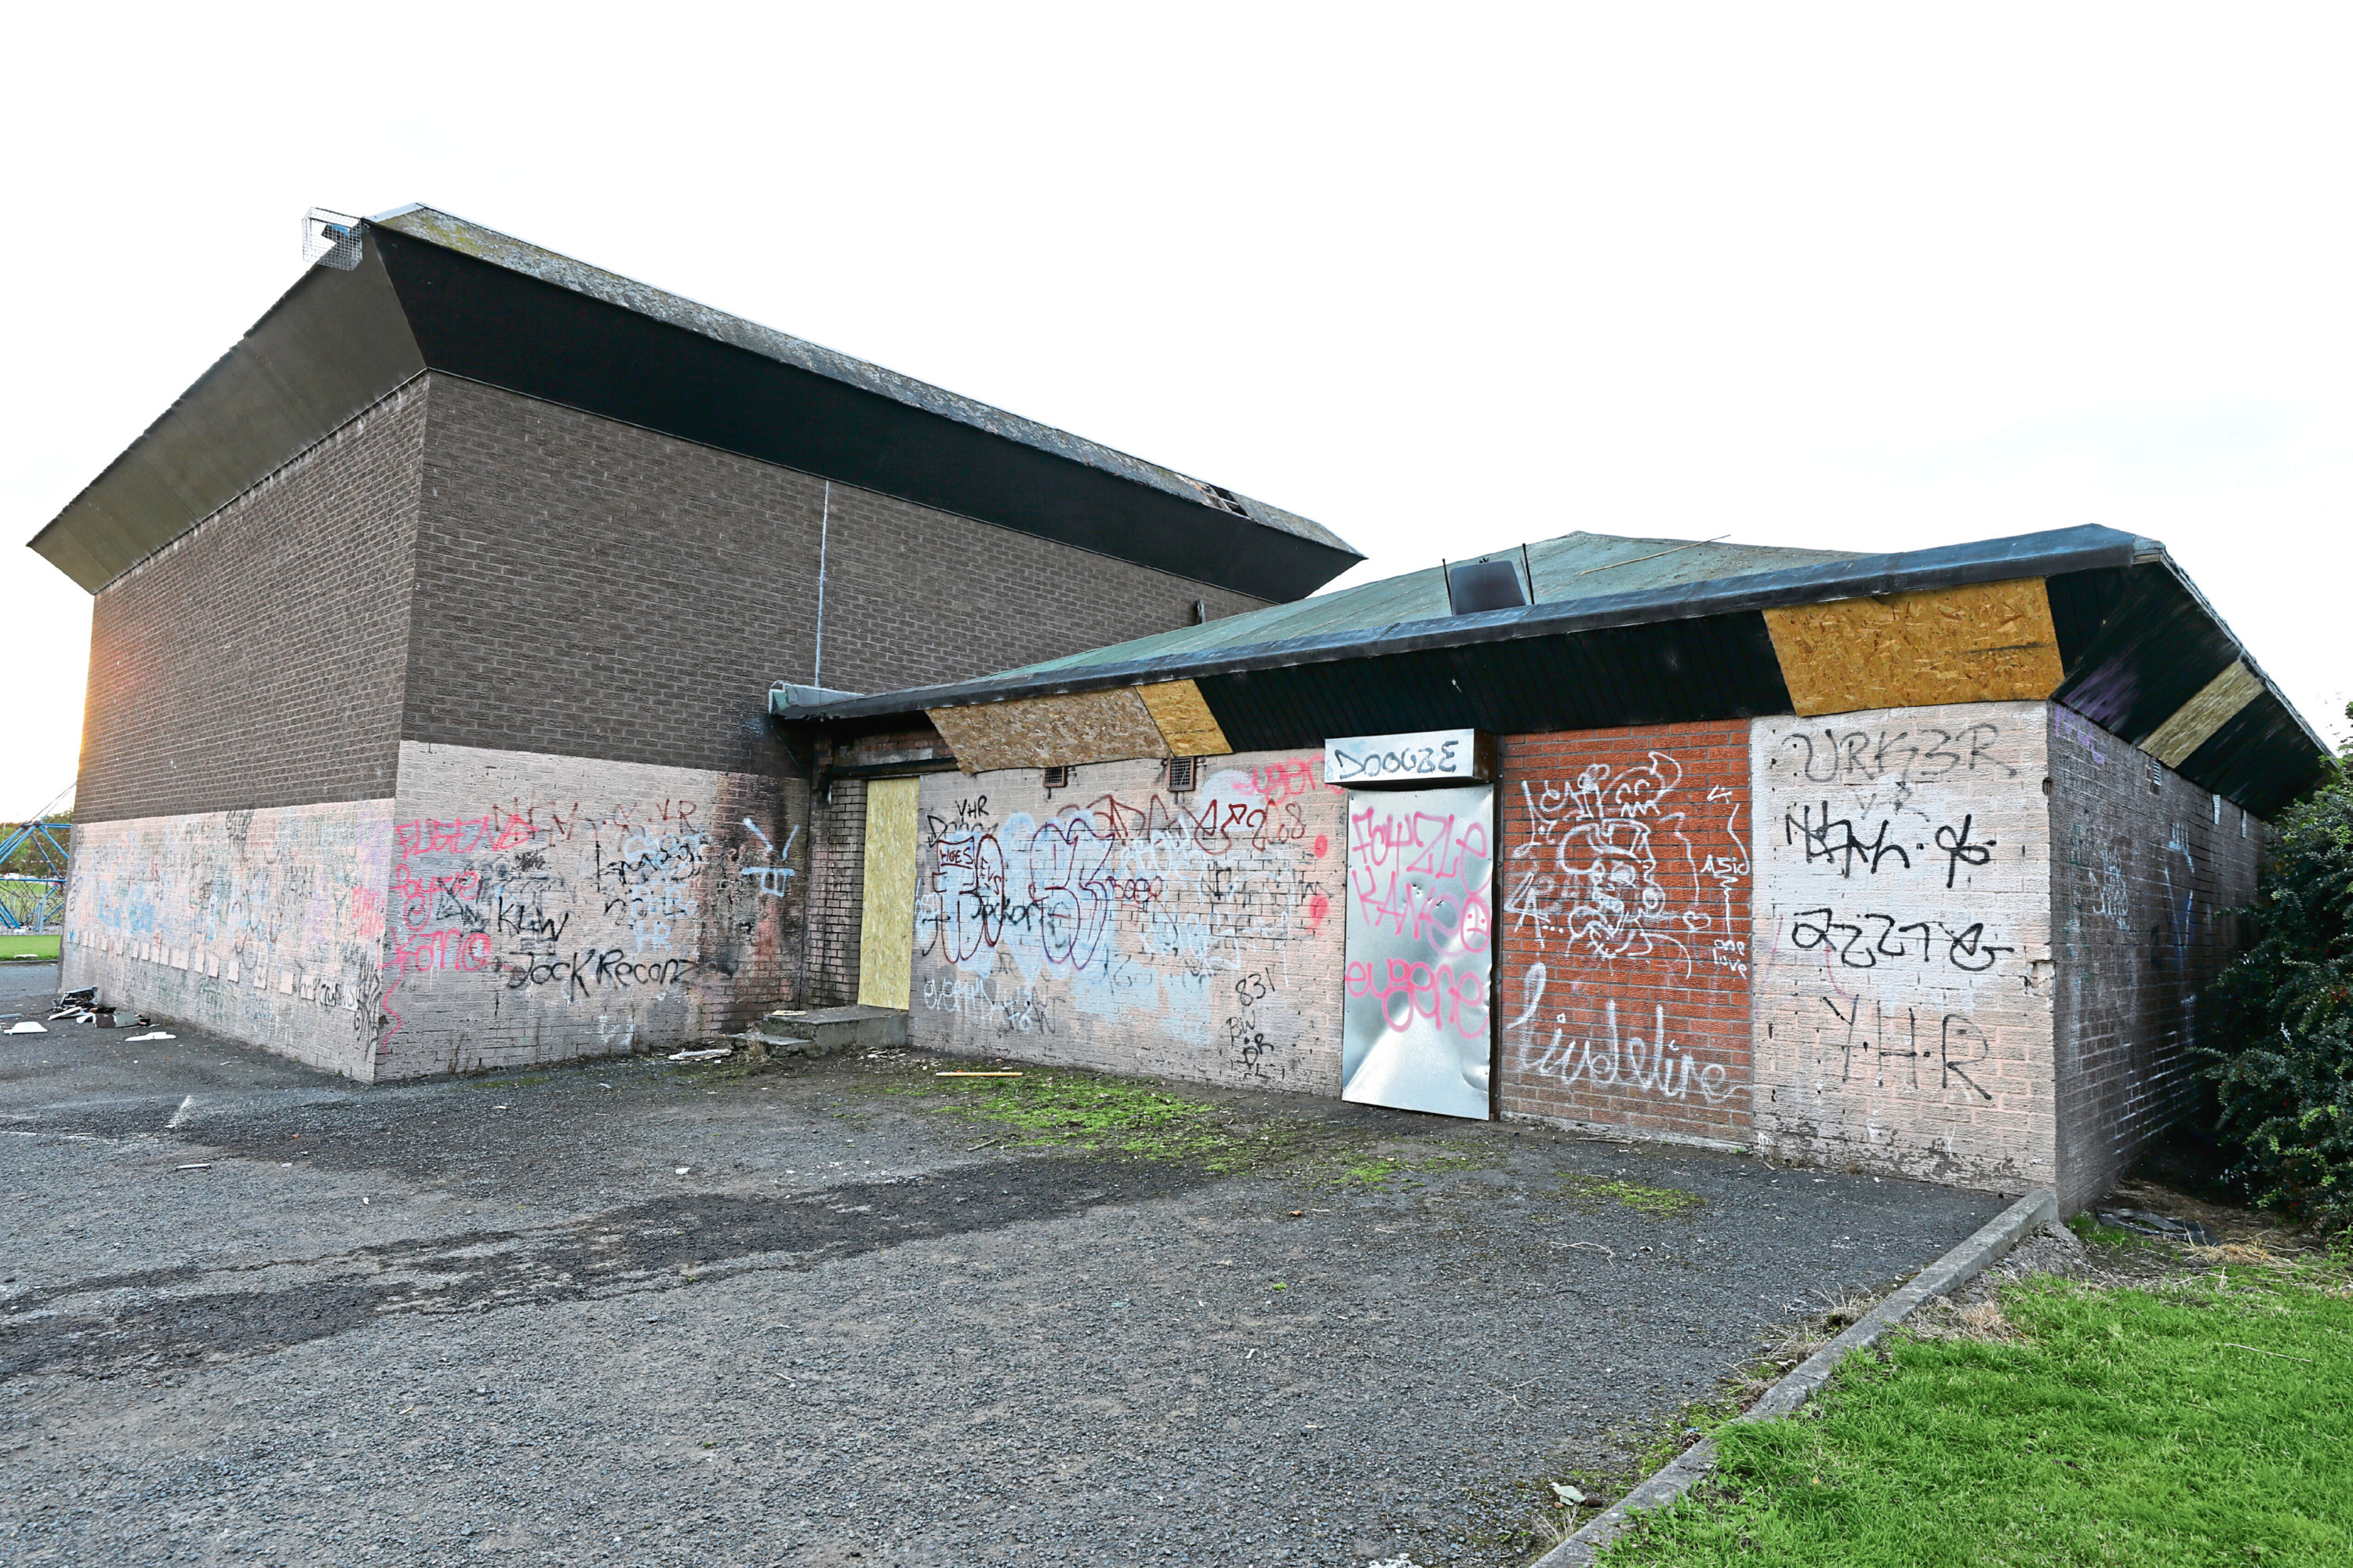 The former Dundee City Council squash courts on Fountainbleau Drive.